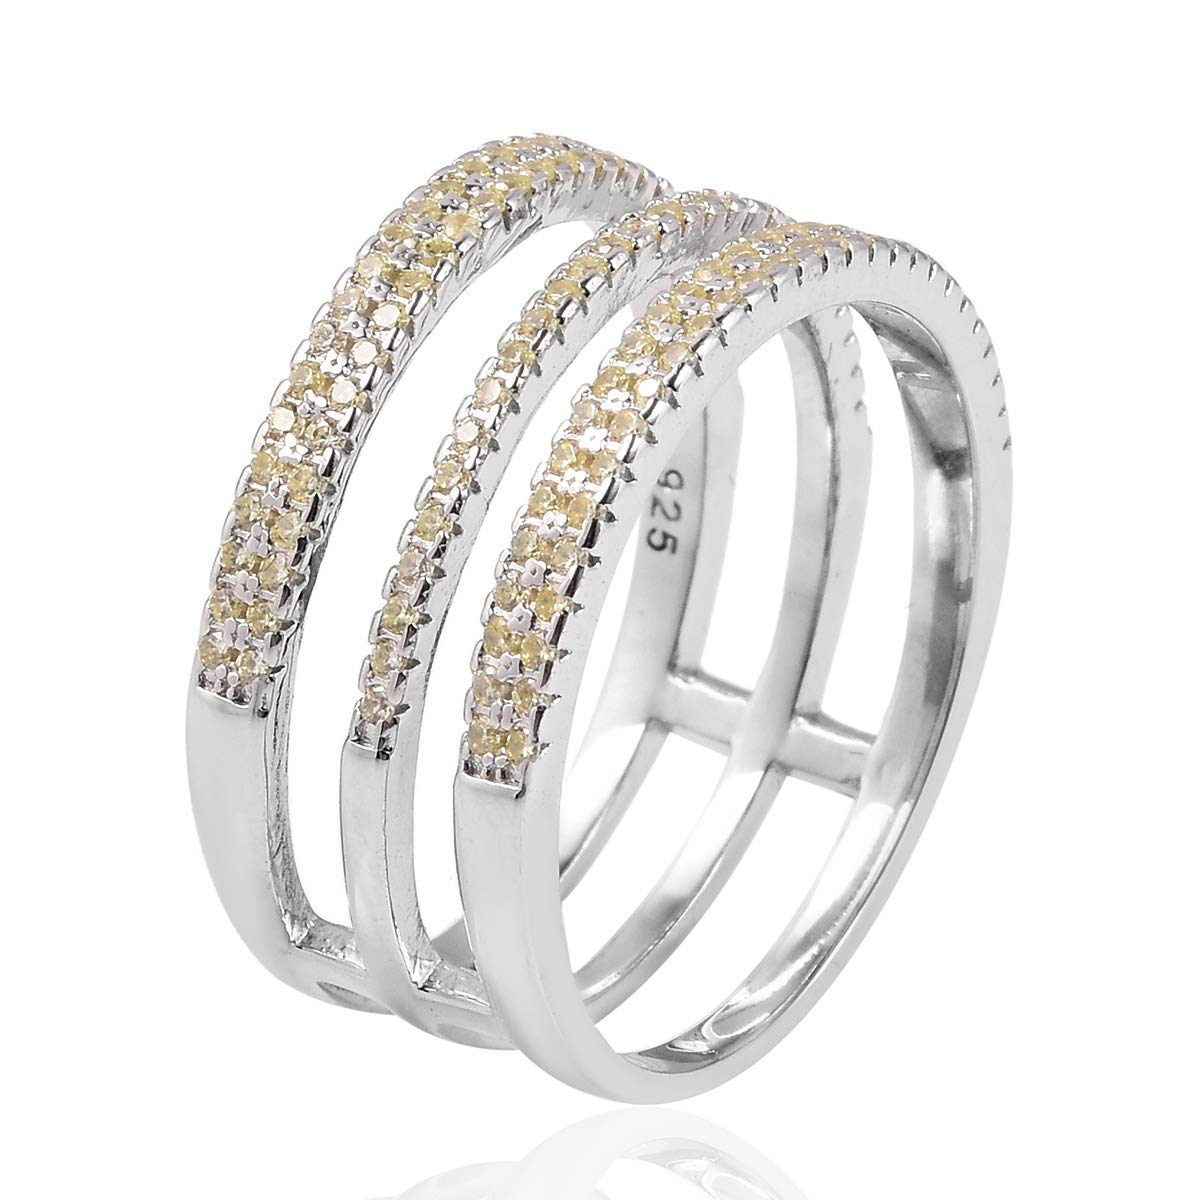 Stackable Ring 925 Sterling Silver Round Yellow Cubic Zirconia CZ Jewelry for Women Ct 1.1